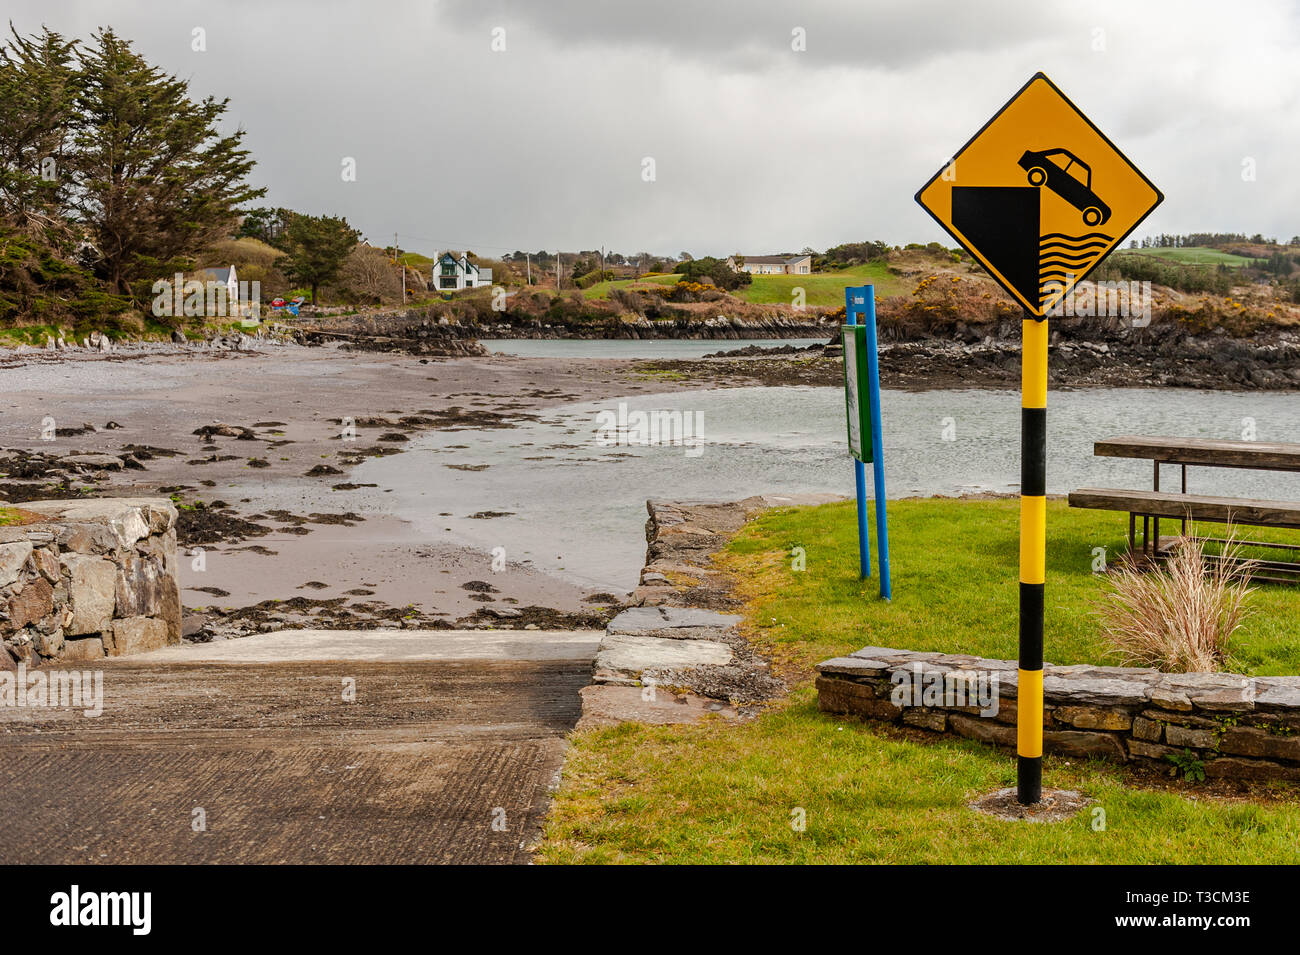 Unprotected Quay road sign in Schull, West Cork, Ireland. - Stock Image